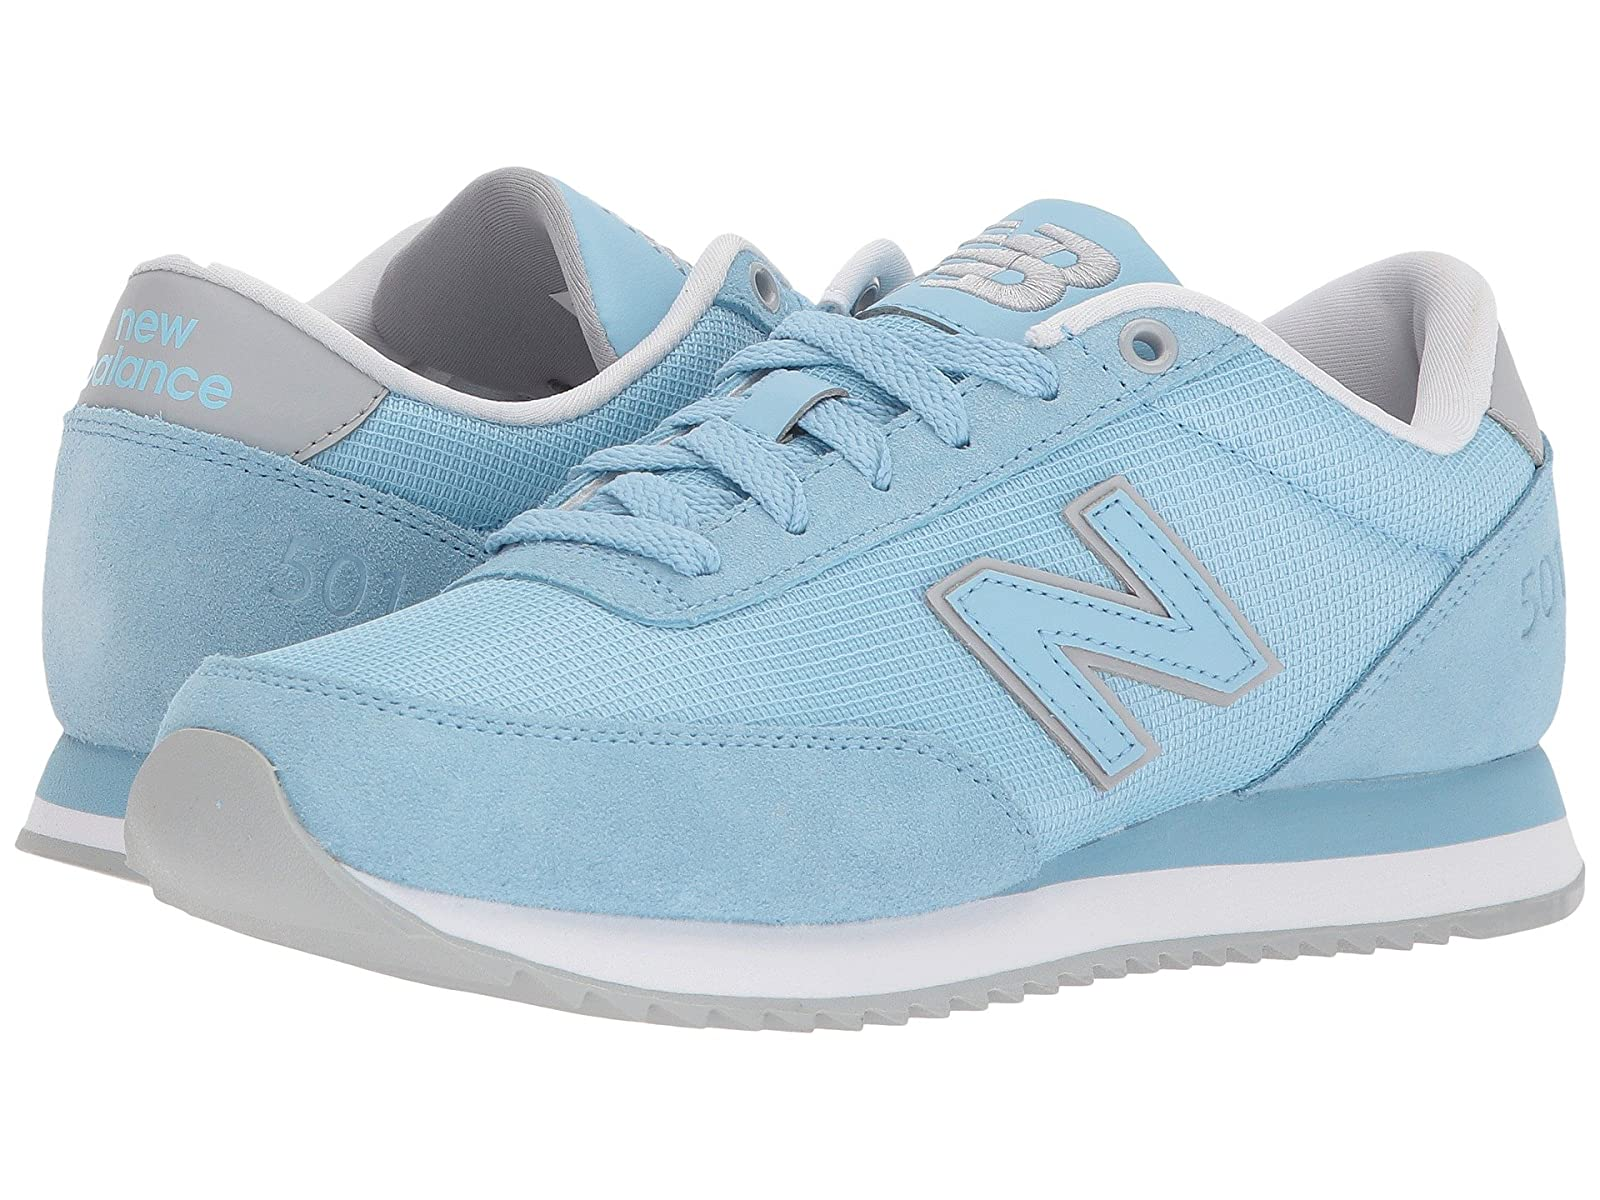 New Balance Classics WZ501v1 /Men's/Women's/fancy /Men's/Women's/fancy /Men's/Women's/fancy cc8ab3